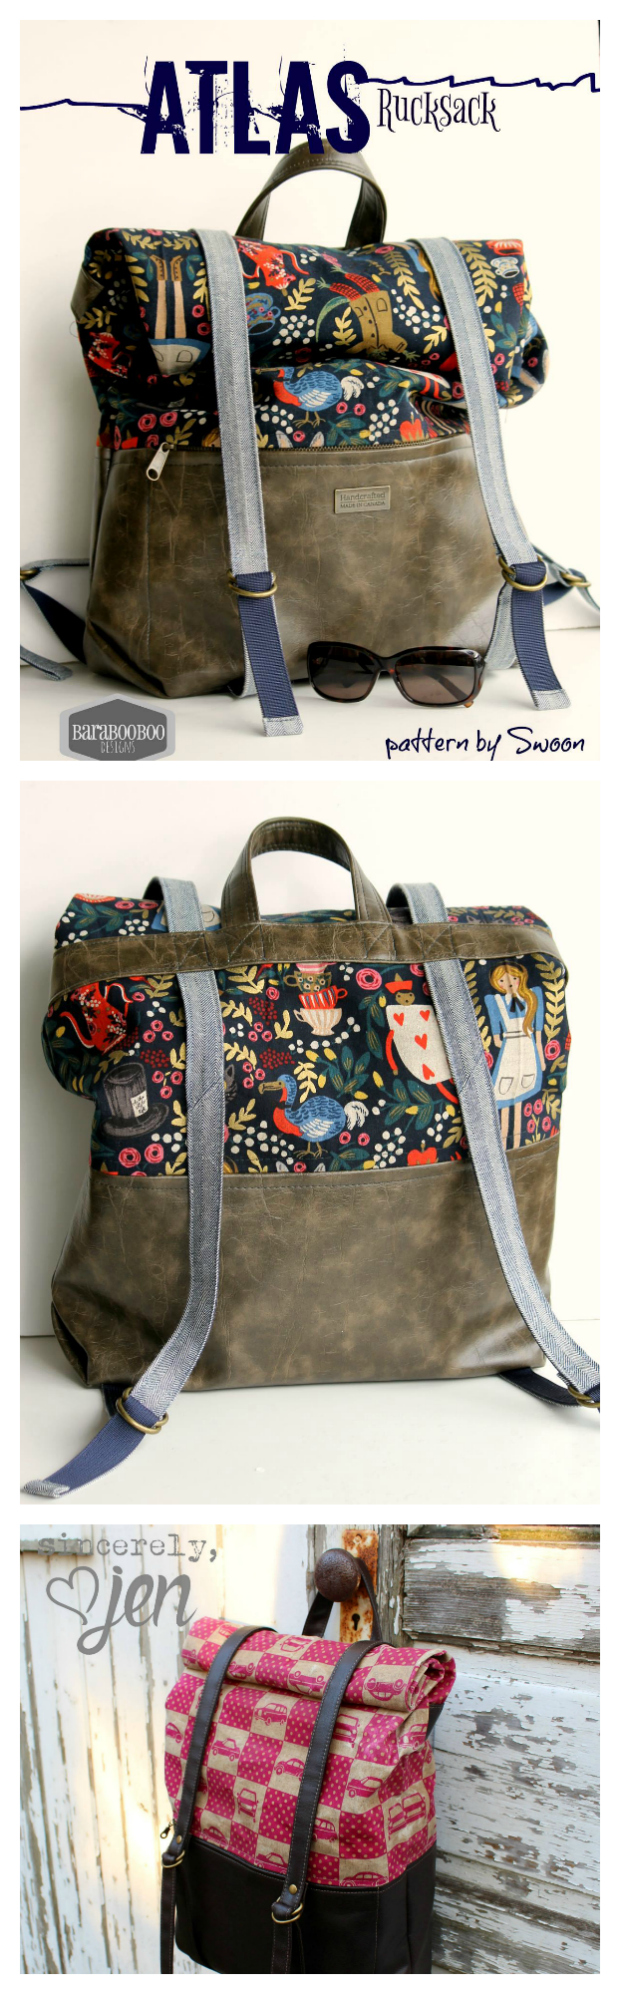 Atlas Rucksack / Backpack sewing pattern.